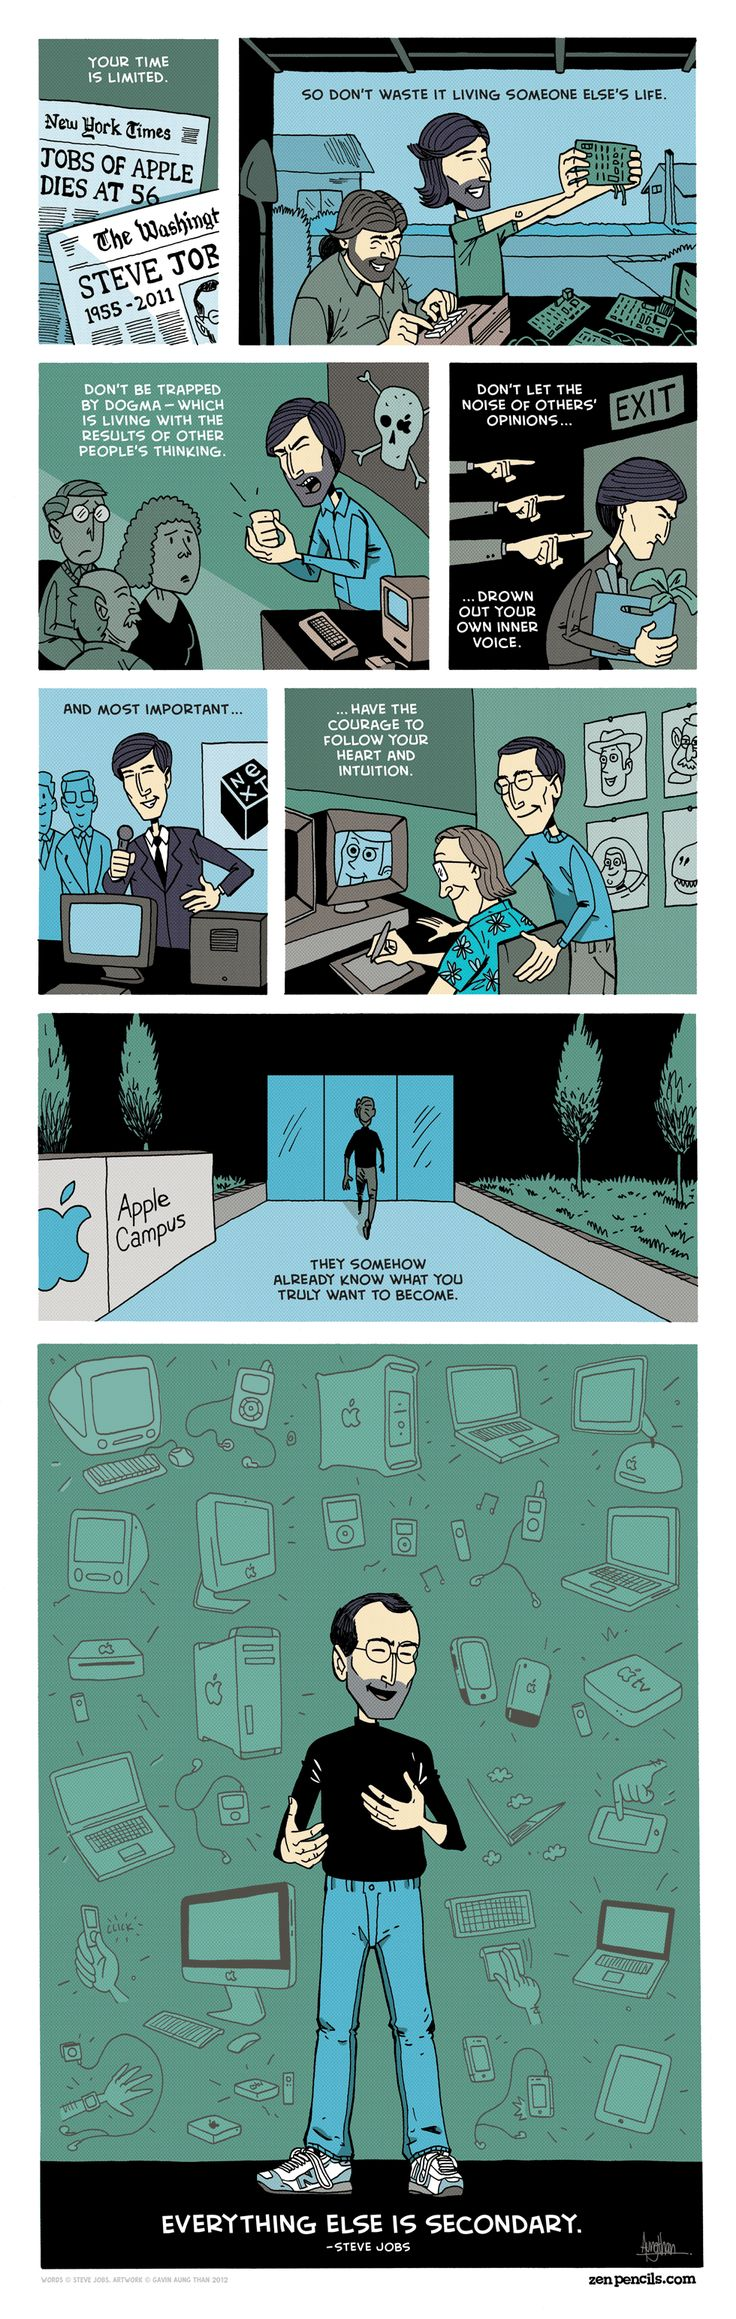 """""""Everything else is secondary"""" ~ Steve Jobs.     Zen Pencils by Gavin Aung Than:  cartoon quotes from inspirational folks"""